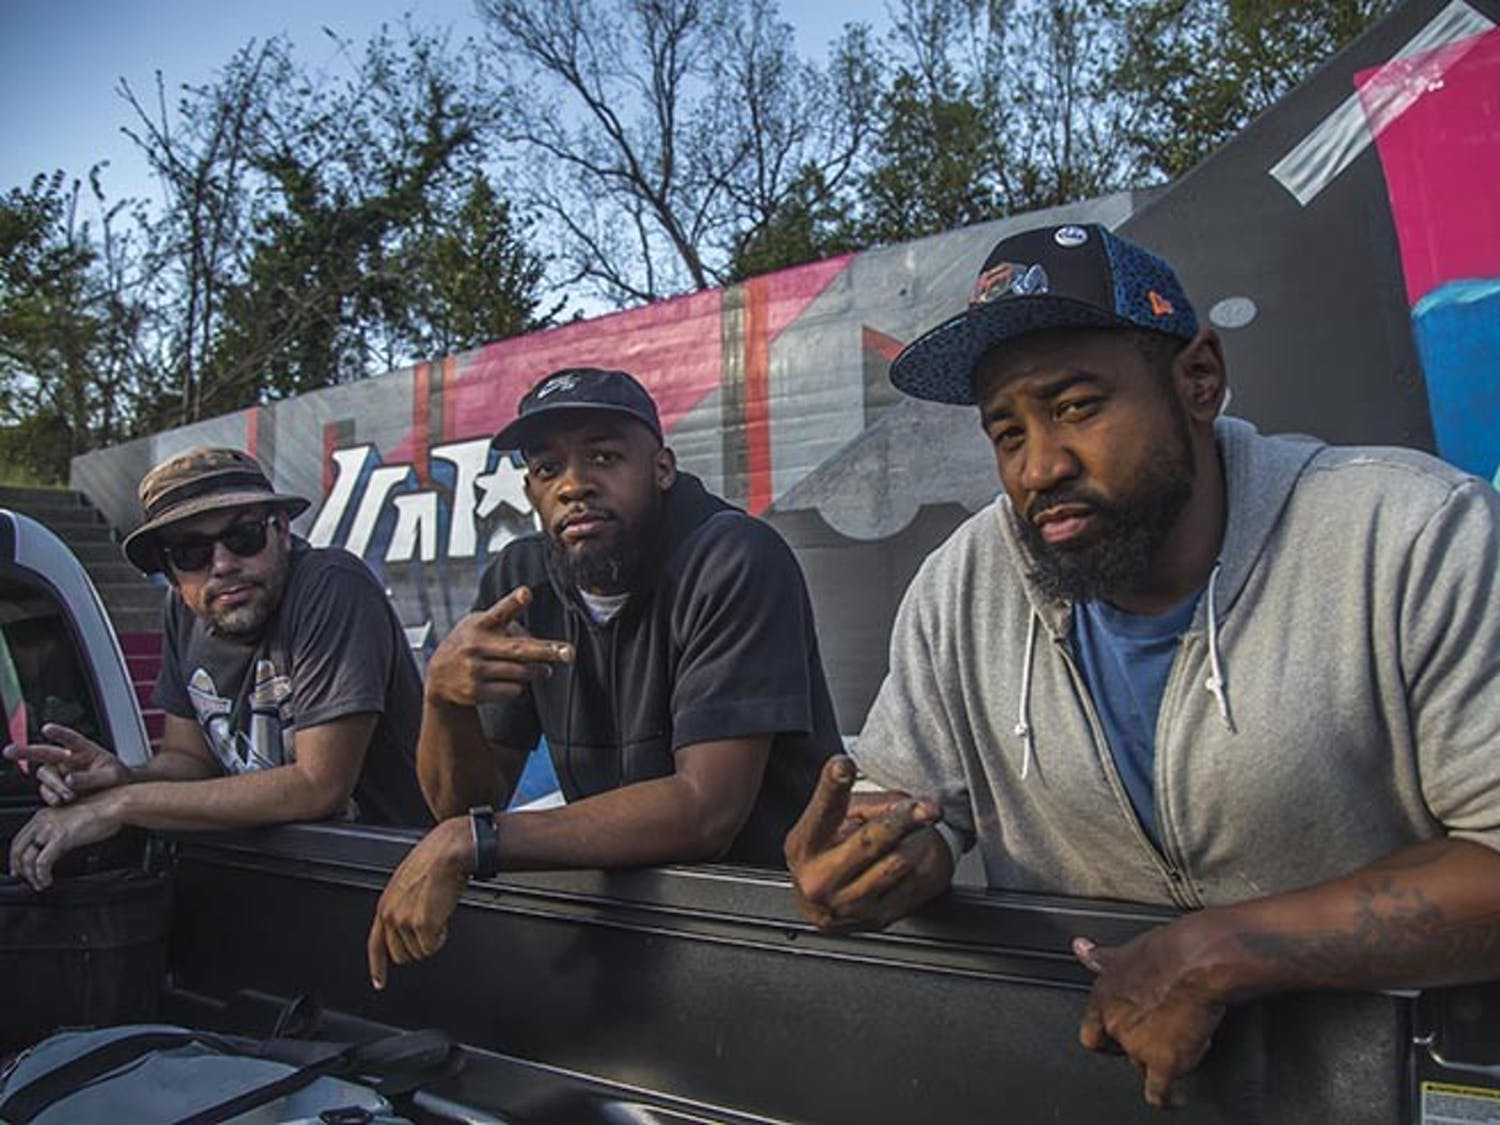 Listed from left to right are Karl Zurfluh, Brandon Donahue and Cedric Umoja, as they work on the triptych mural in Millwood Avenue.